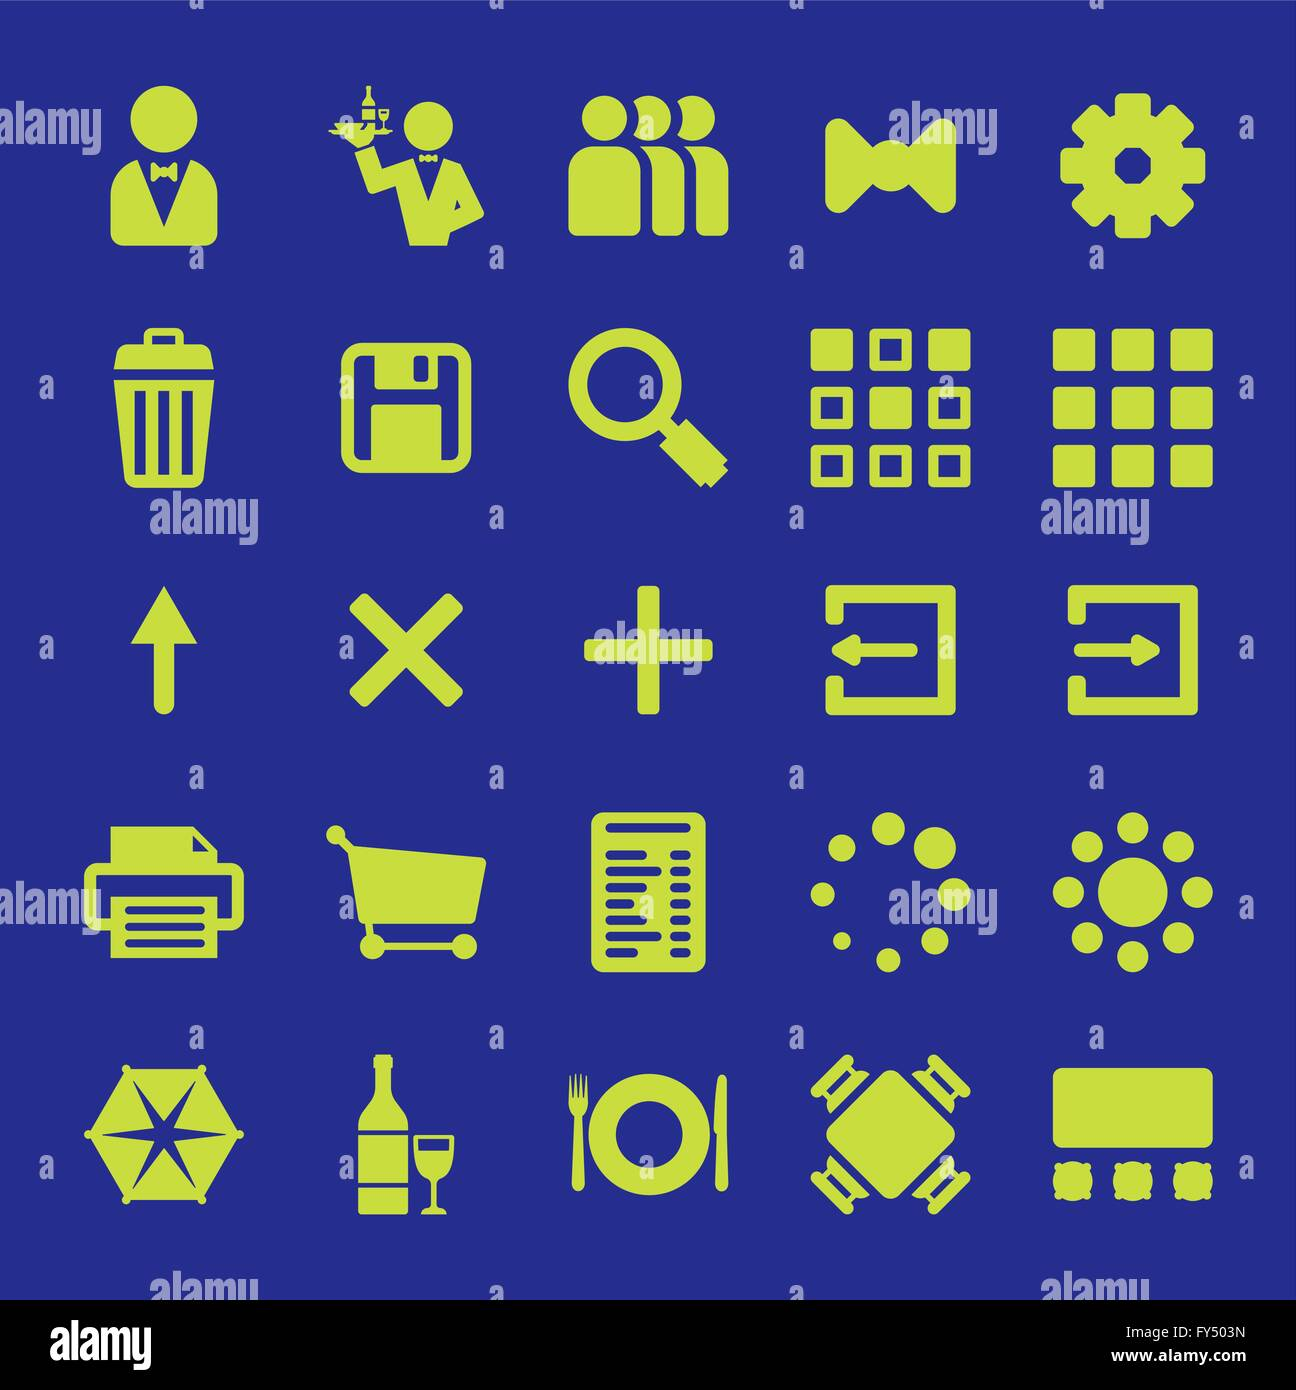 Restaurant Mobile App Vector Icon Design Set Collection Of Symbols